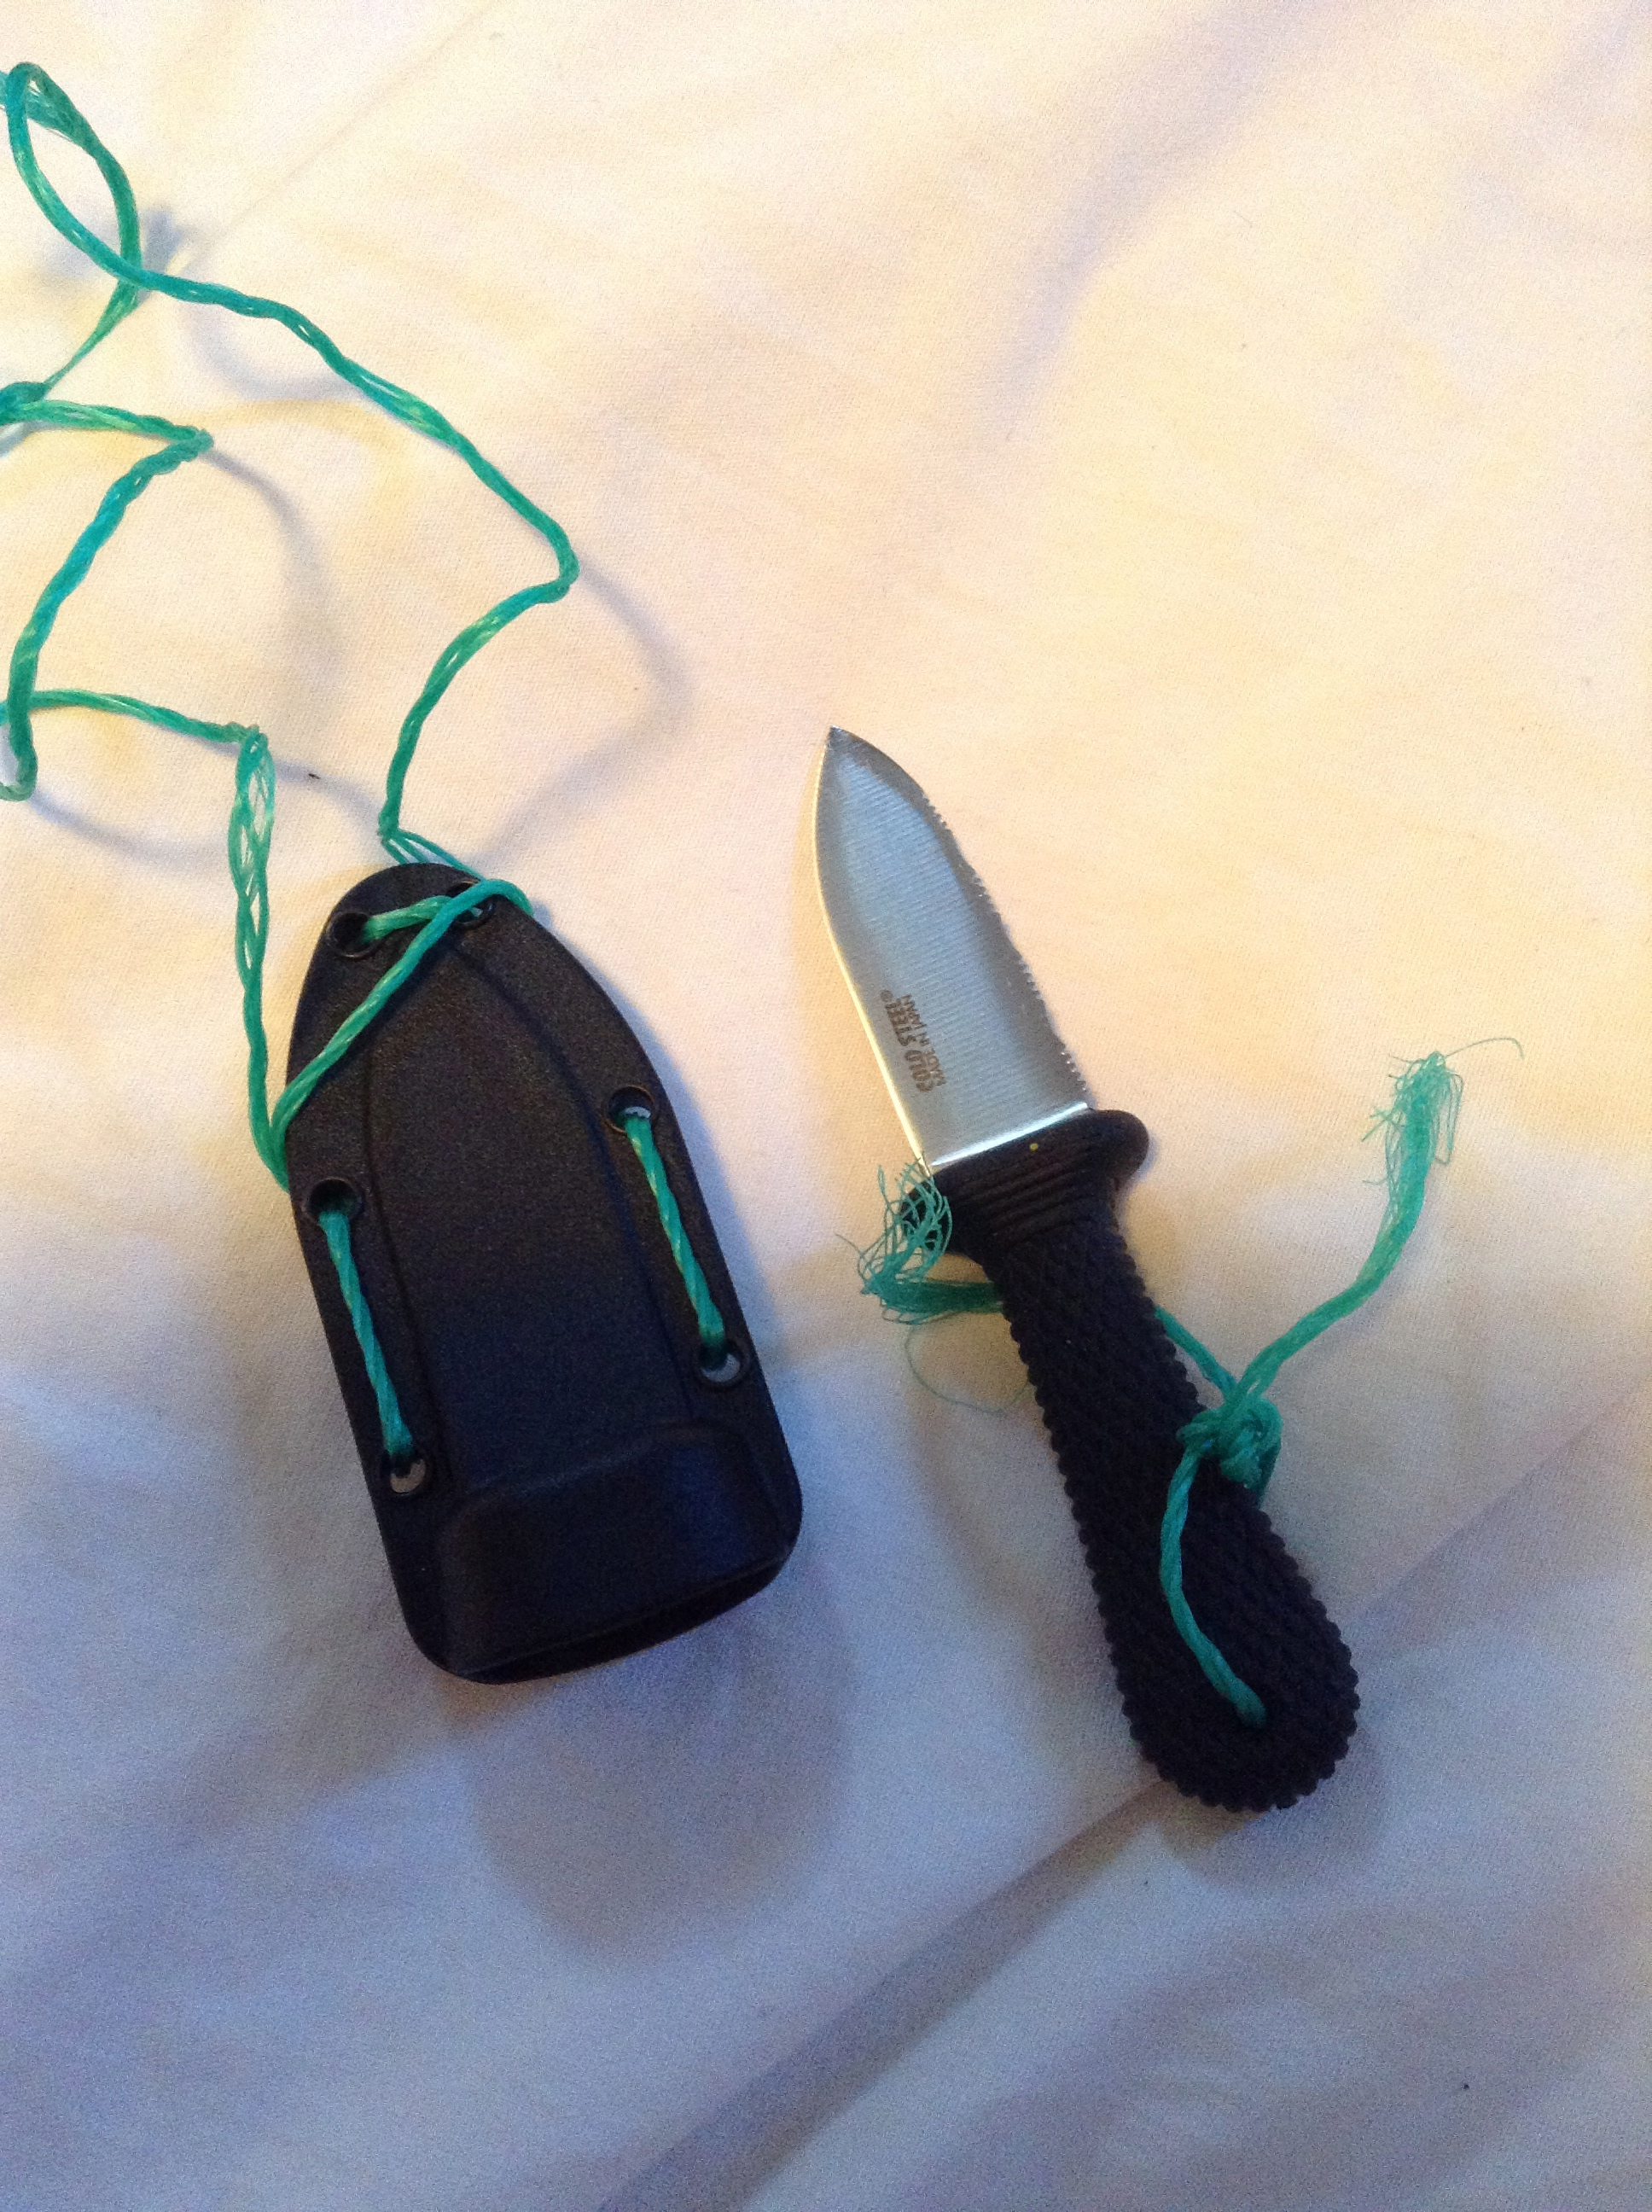 Picture of Knives and Choosing a Knife